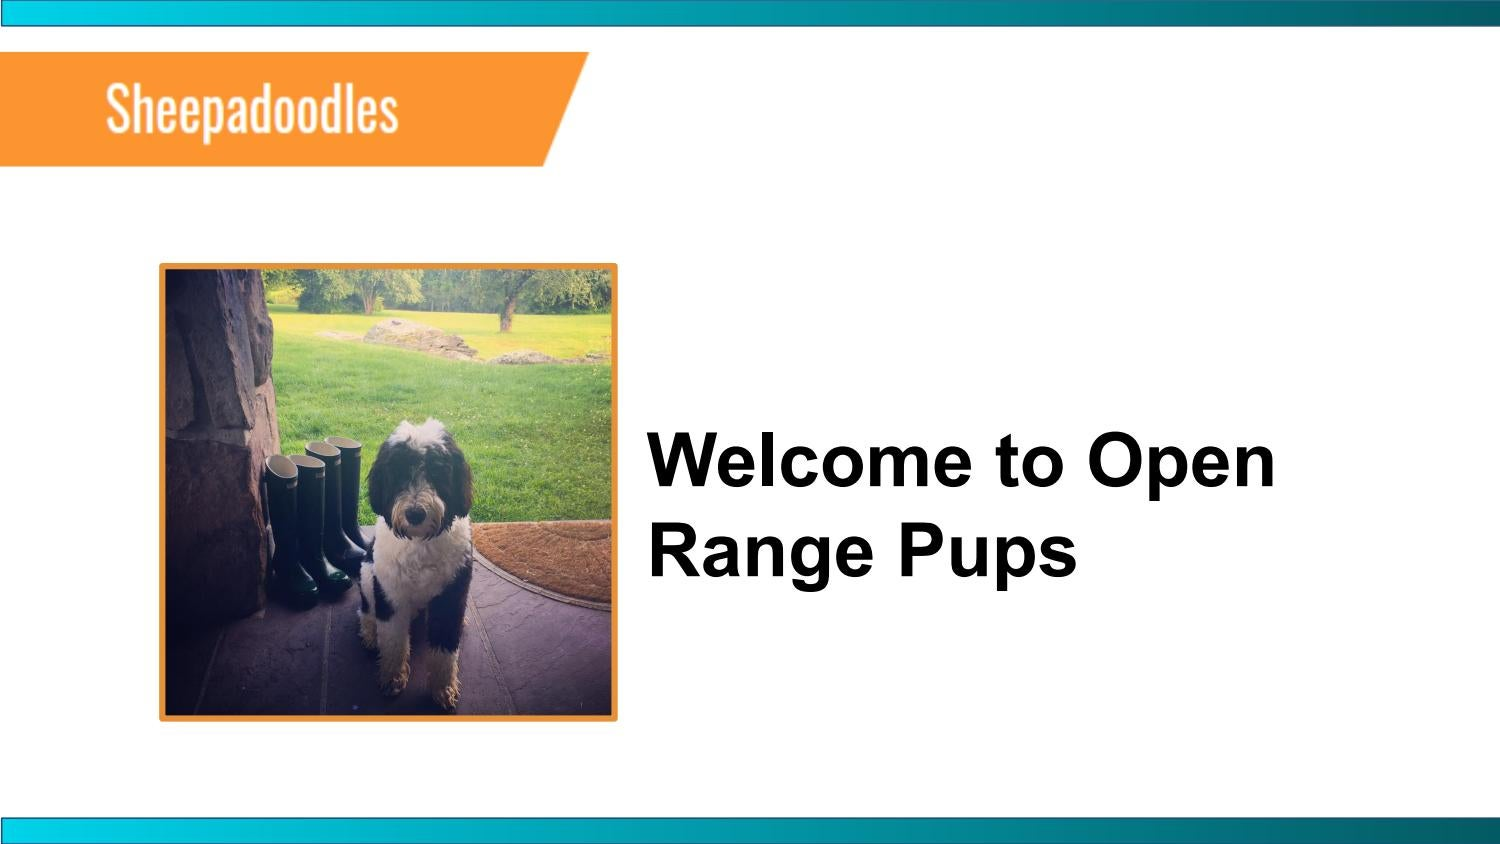 F1 Mini Sheepadoodle for Sale in Eckert | Open Range Pups by